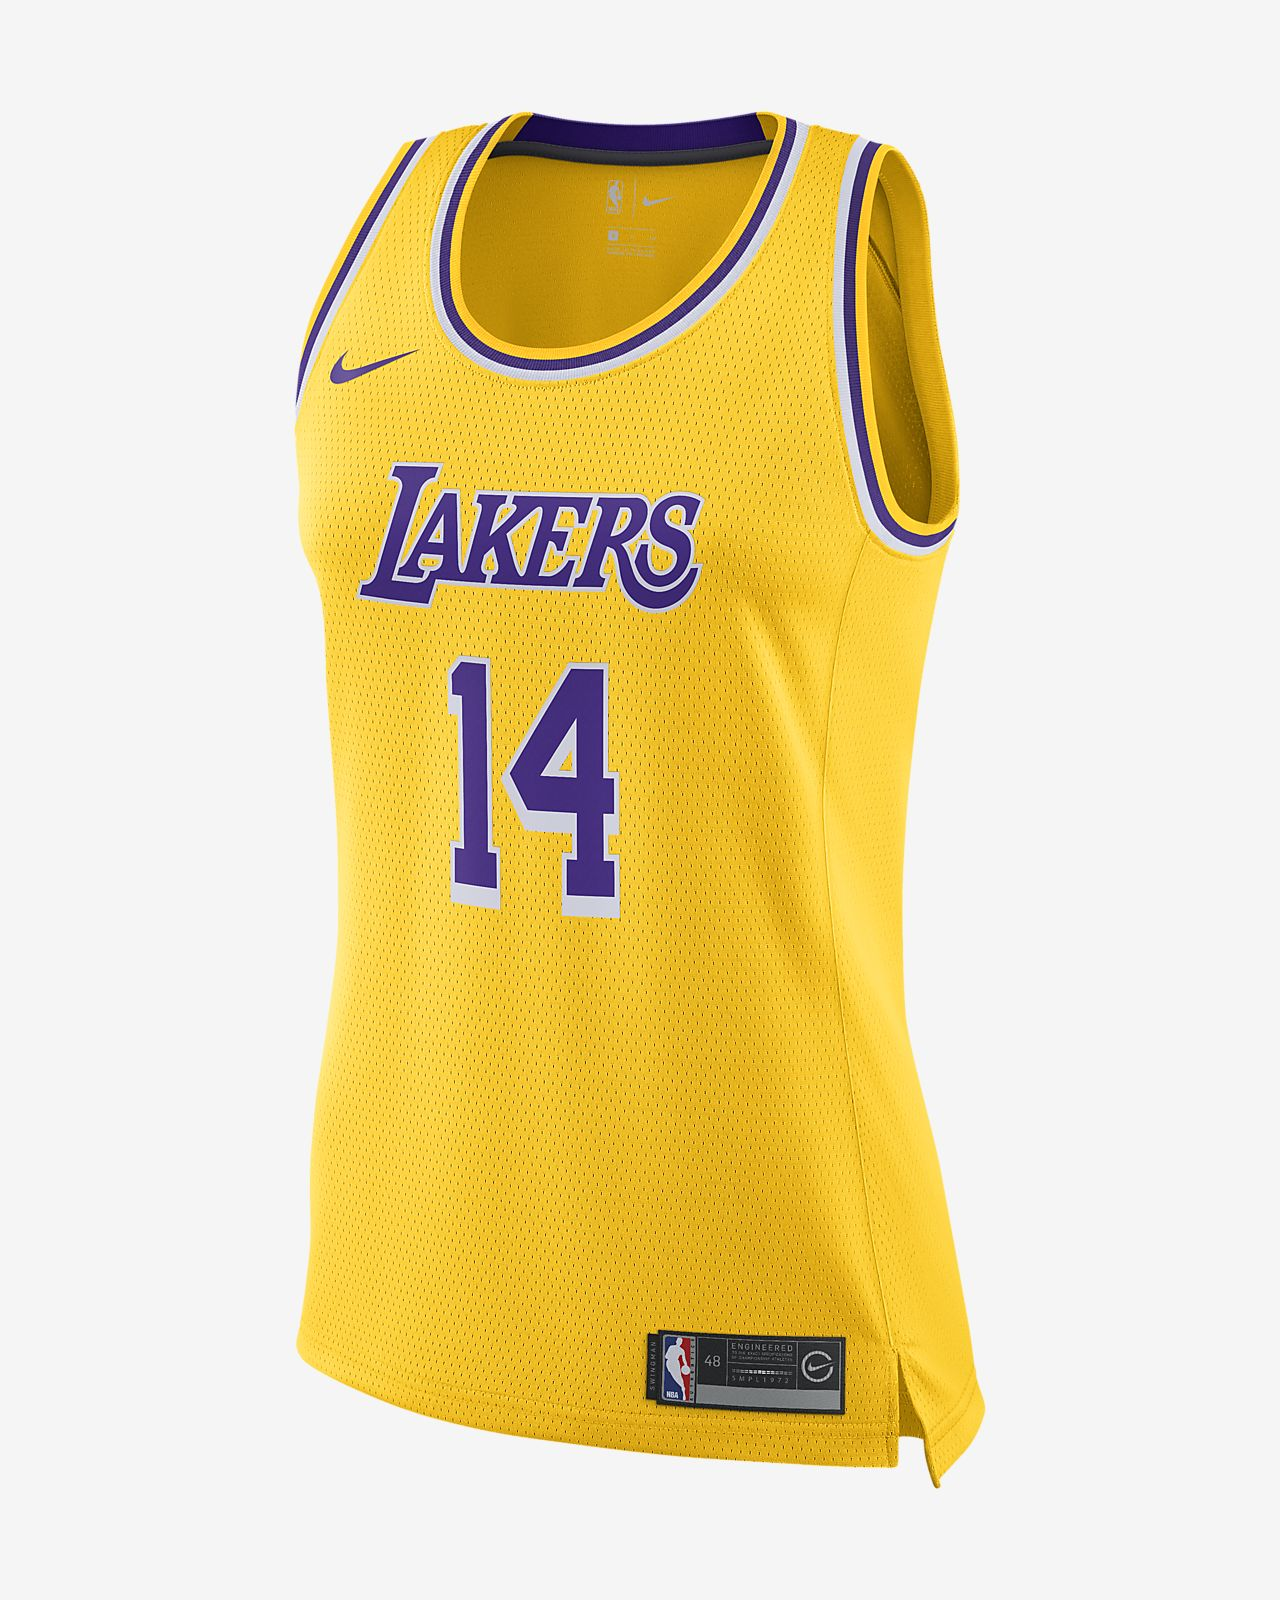 b1df01419 Women s Nike NBA Connected Jersey. Brandon Ingram Icon Edition Swingman (Los  Angeles Lakers)